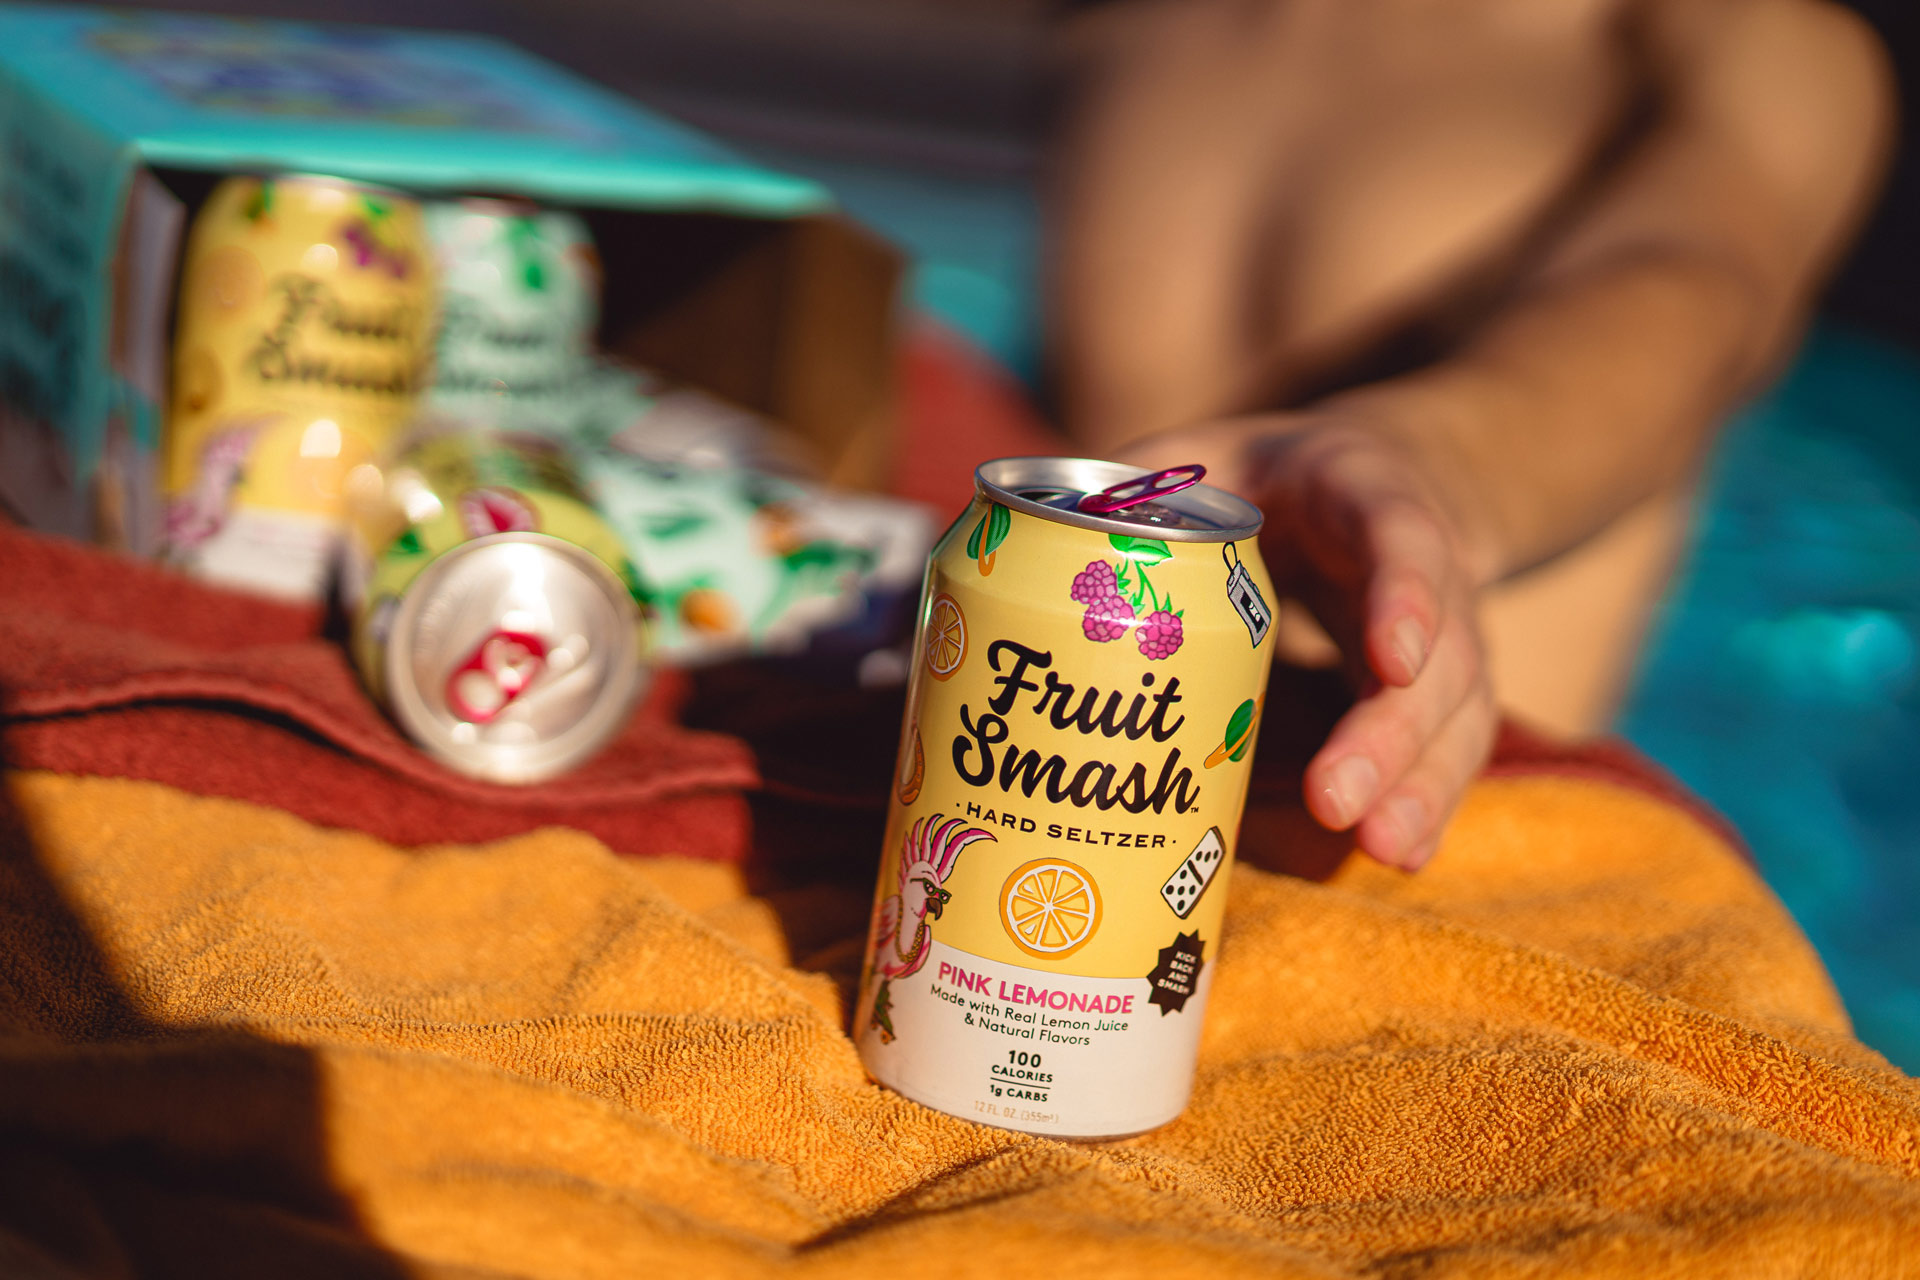 New Belgium Brewing's first line of hard seltzers this spring, Fruit Smash